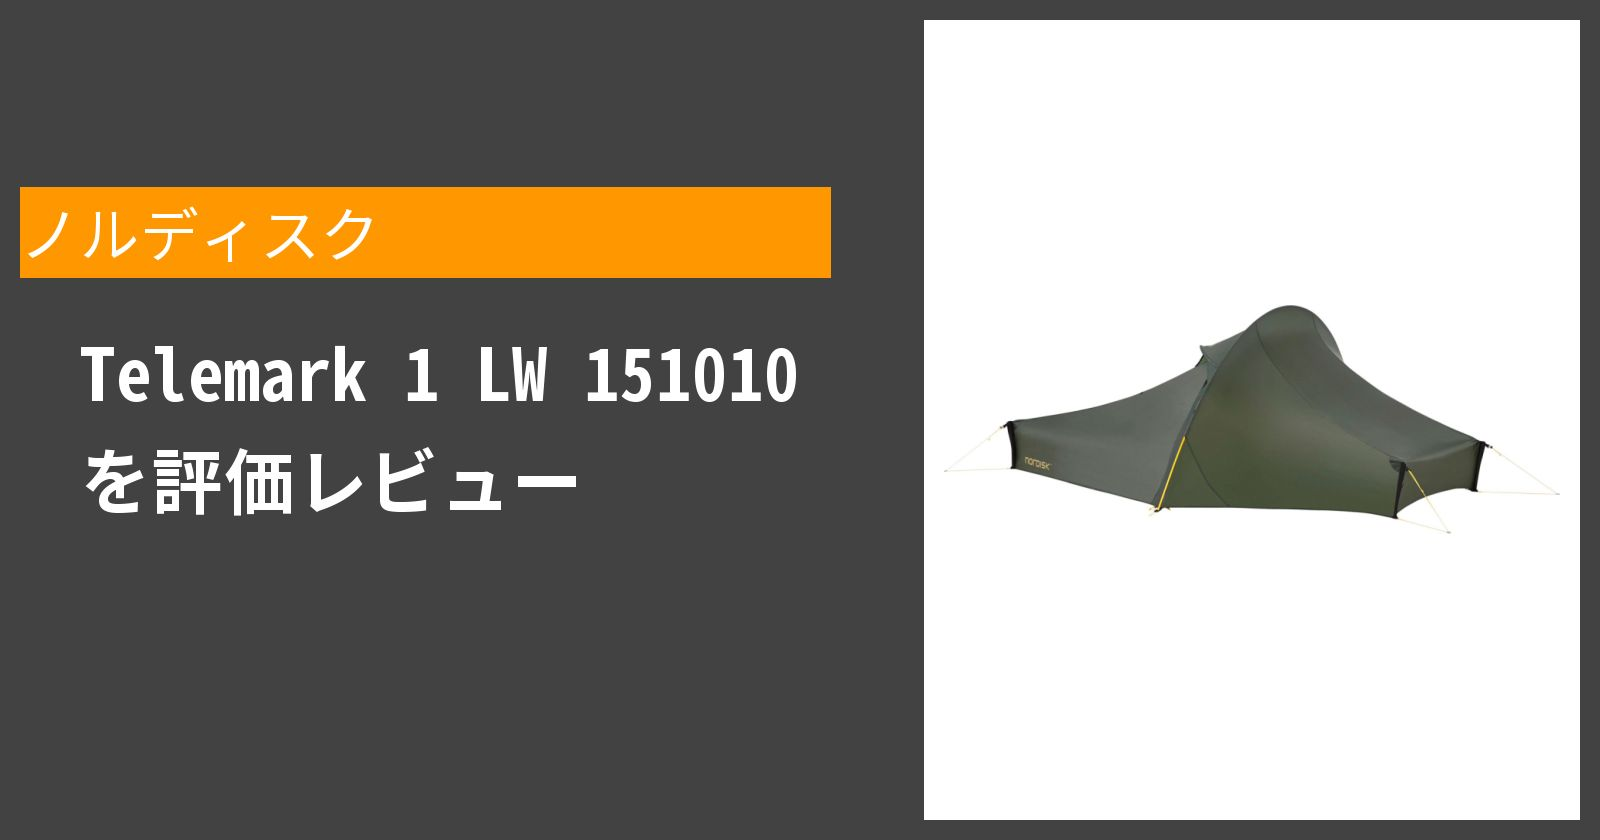 Telemark 1 LW 151010を徹底評価